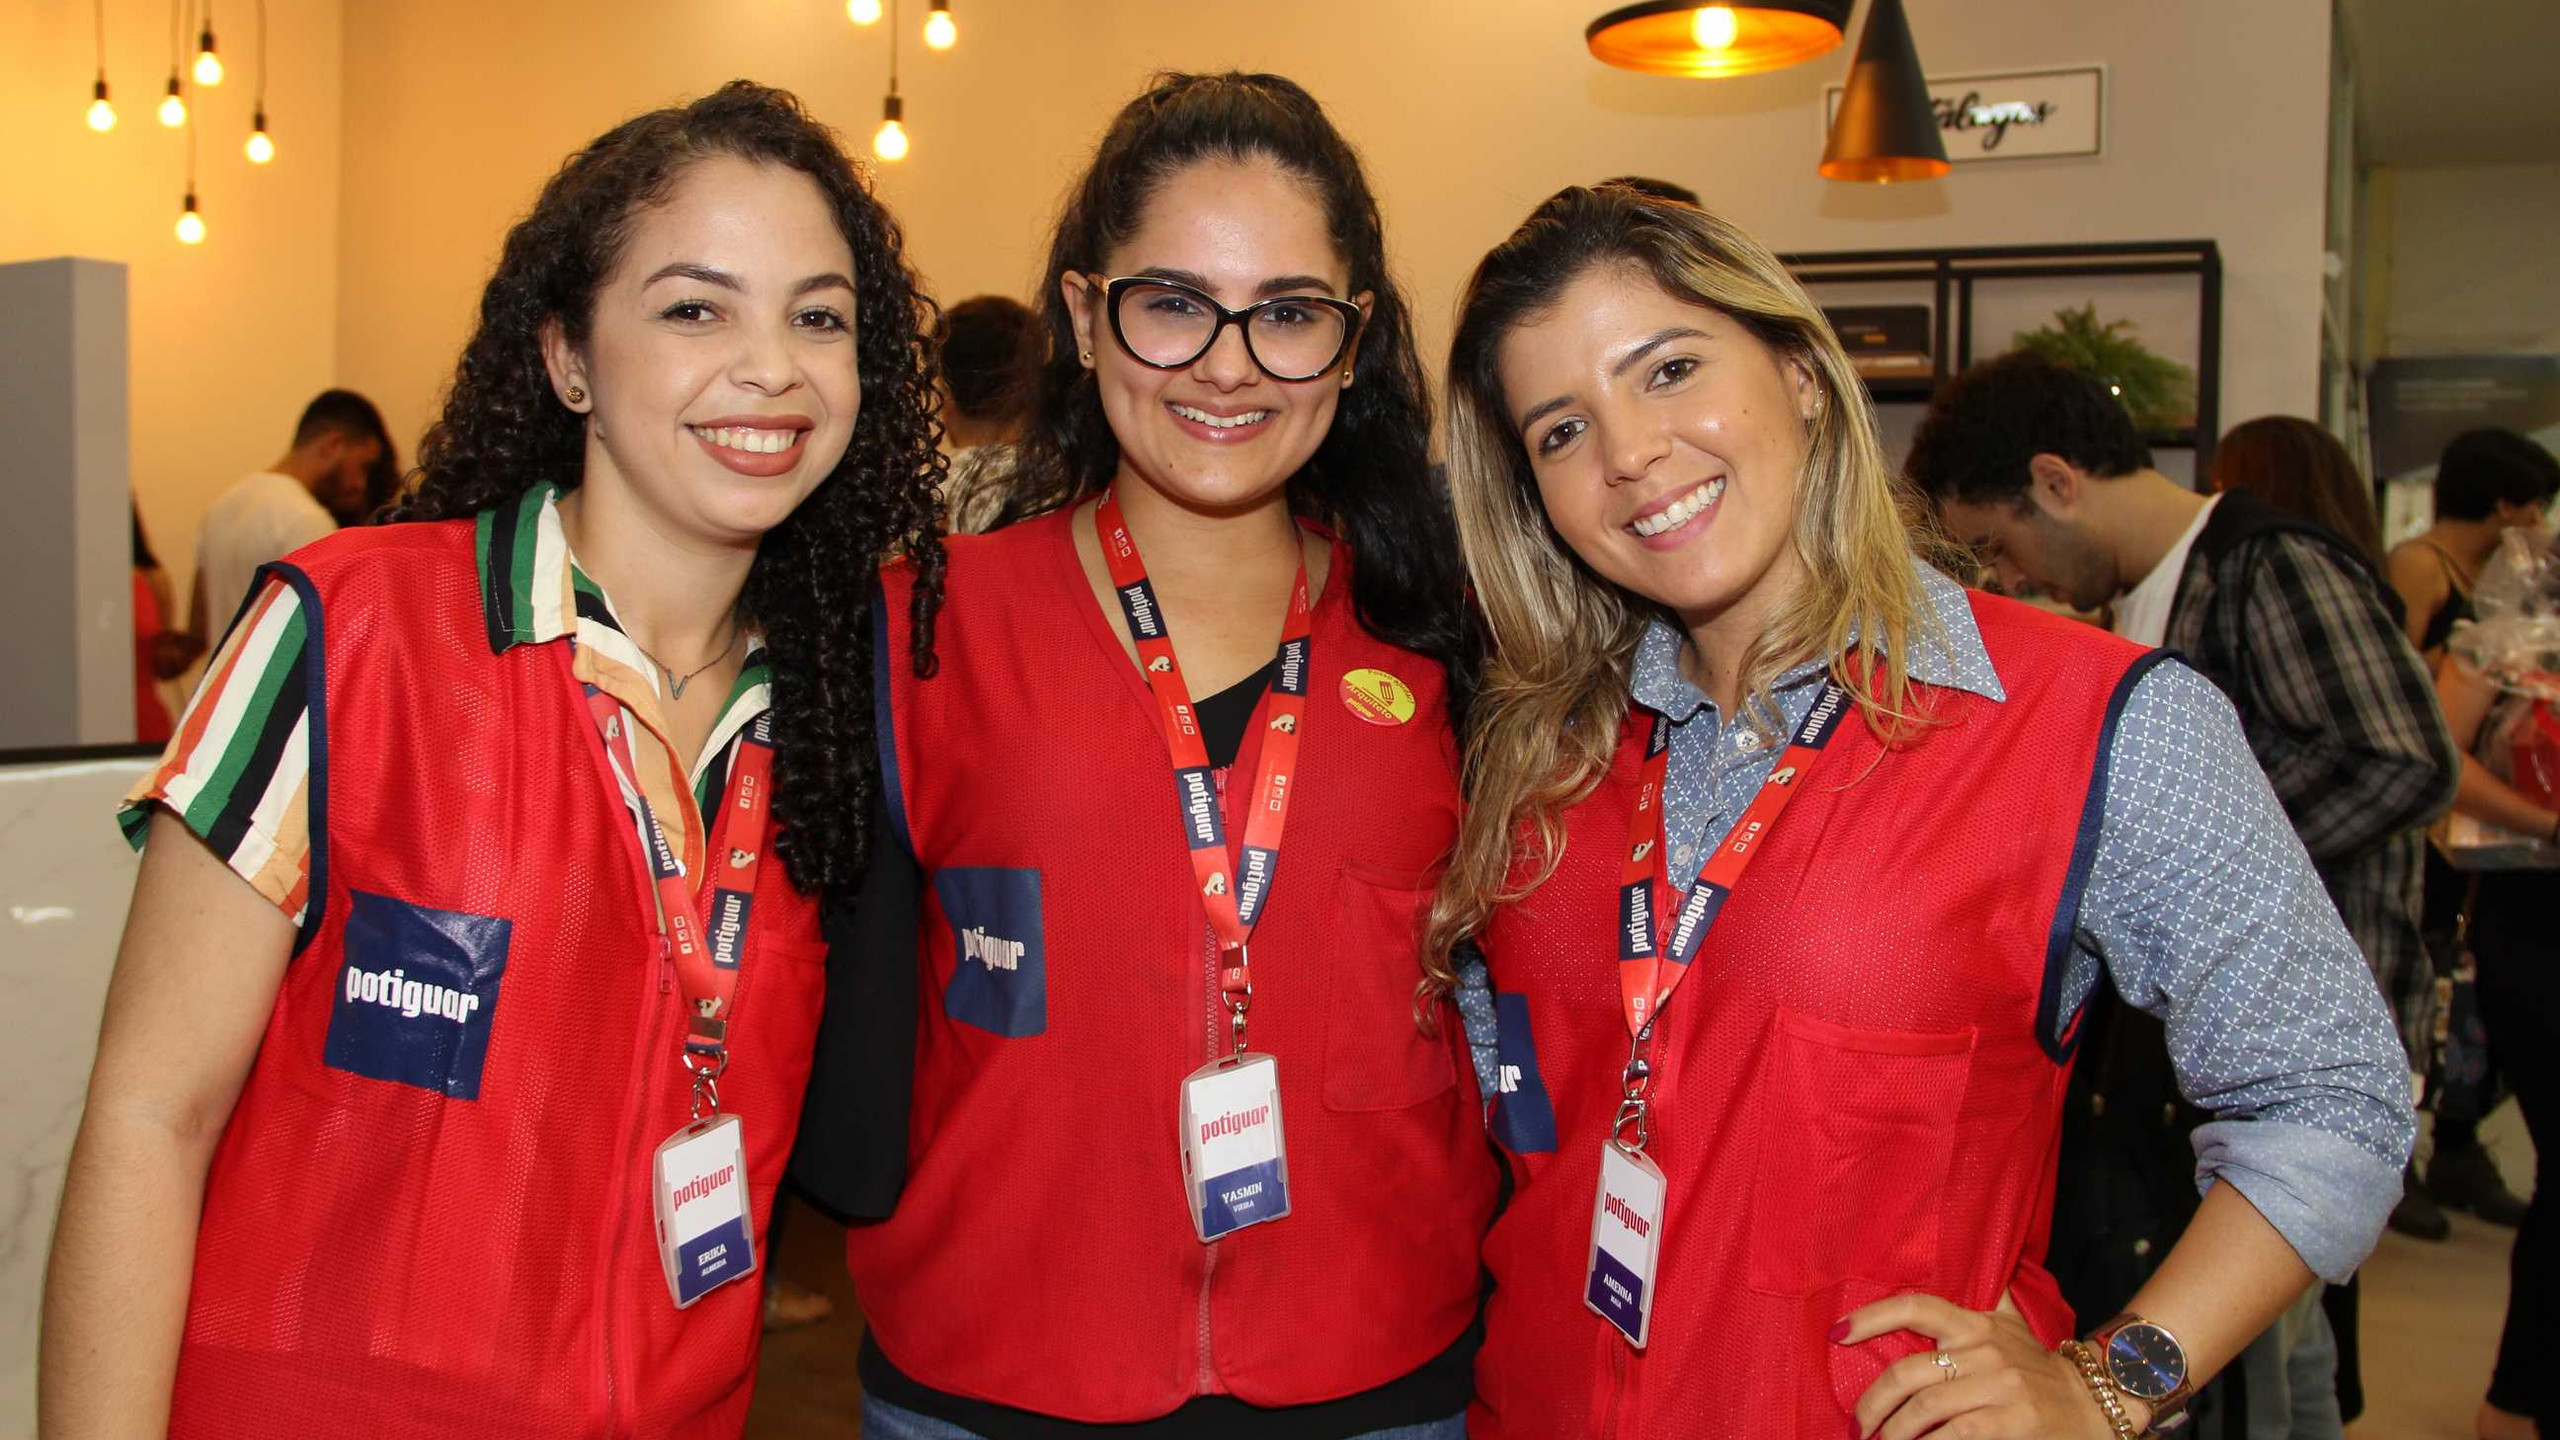 As arquitetas do Grupo Potiguar: Érika Azevedo, Yasmim Melo e Amenna Maia.